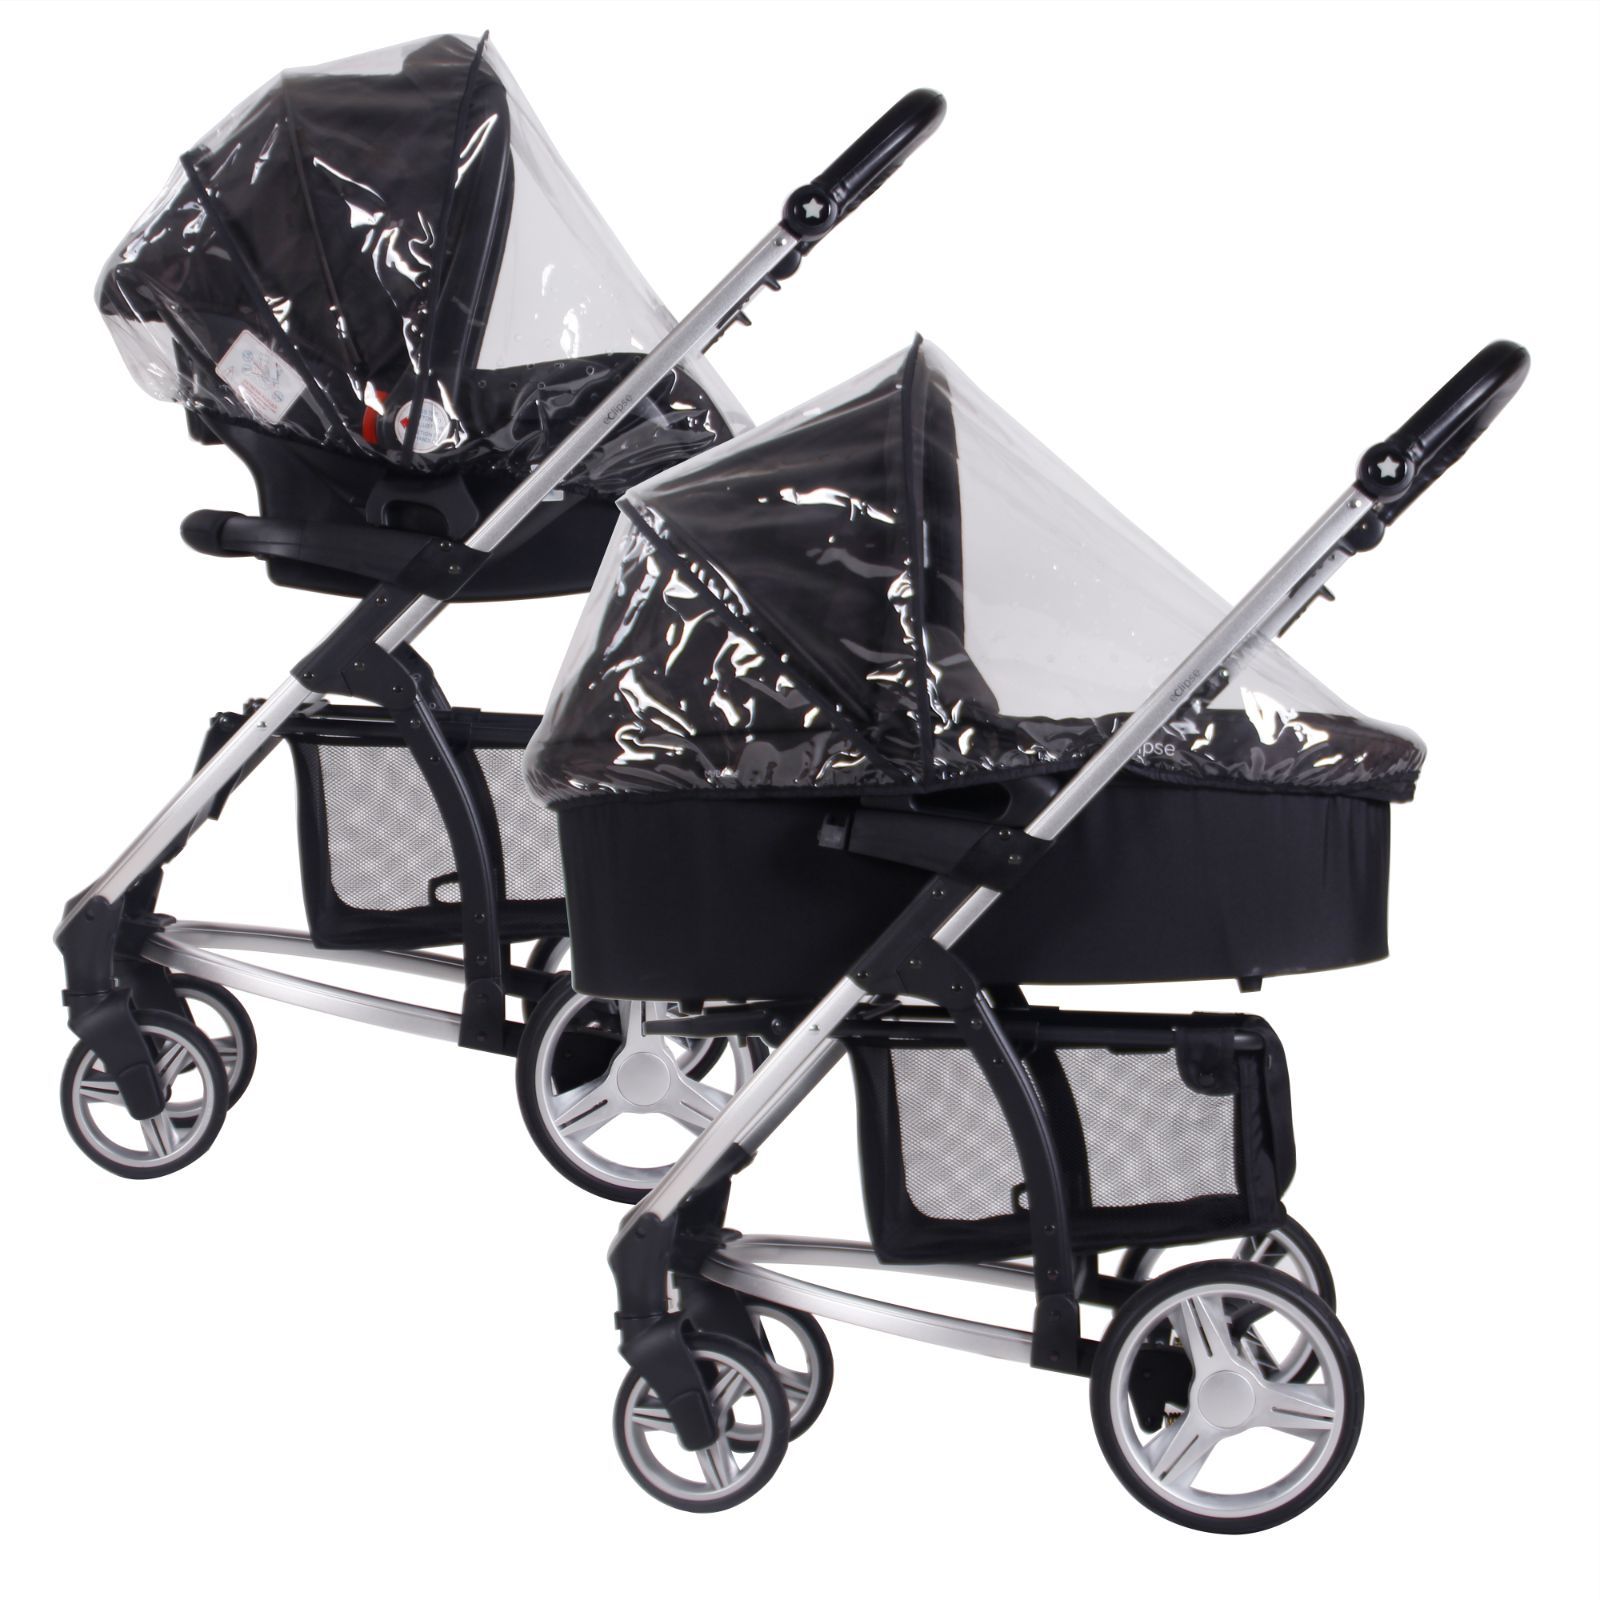 My Babiie Bassinet Amp Car Seat Raincover Buy At Online4baby